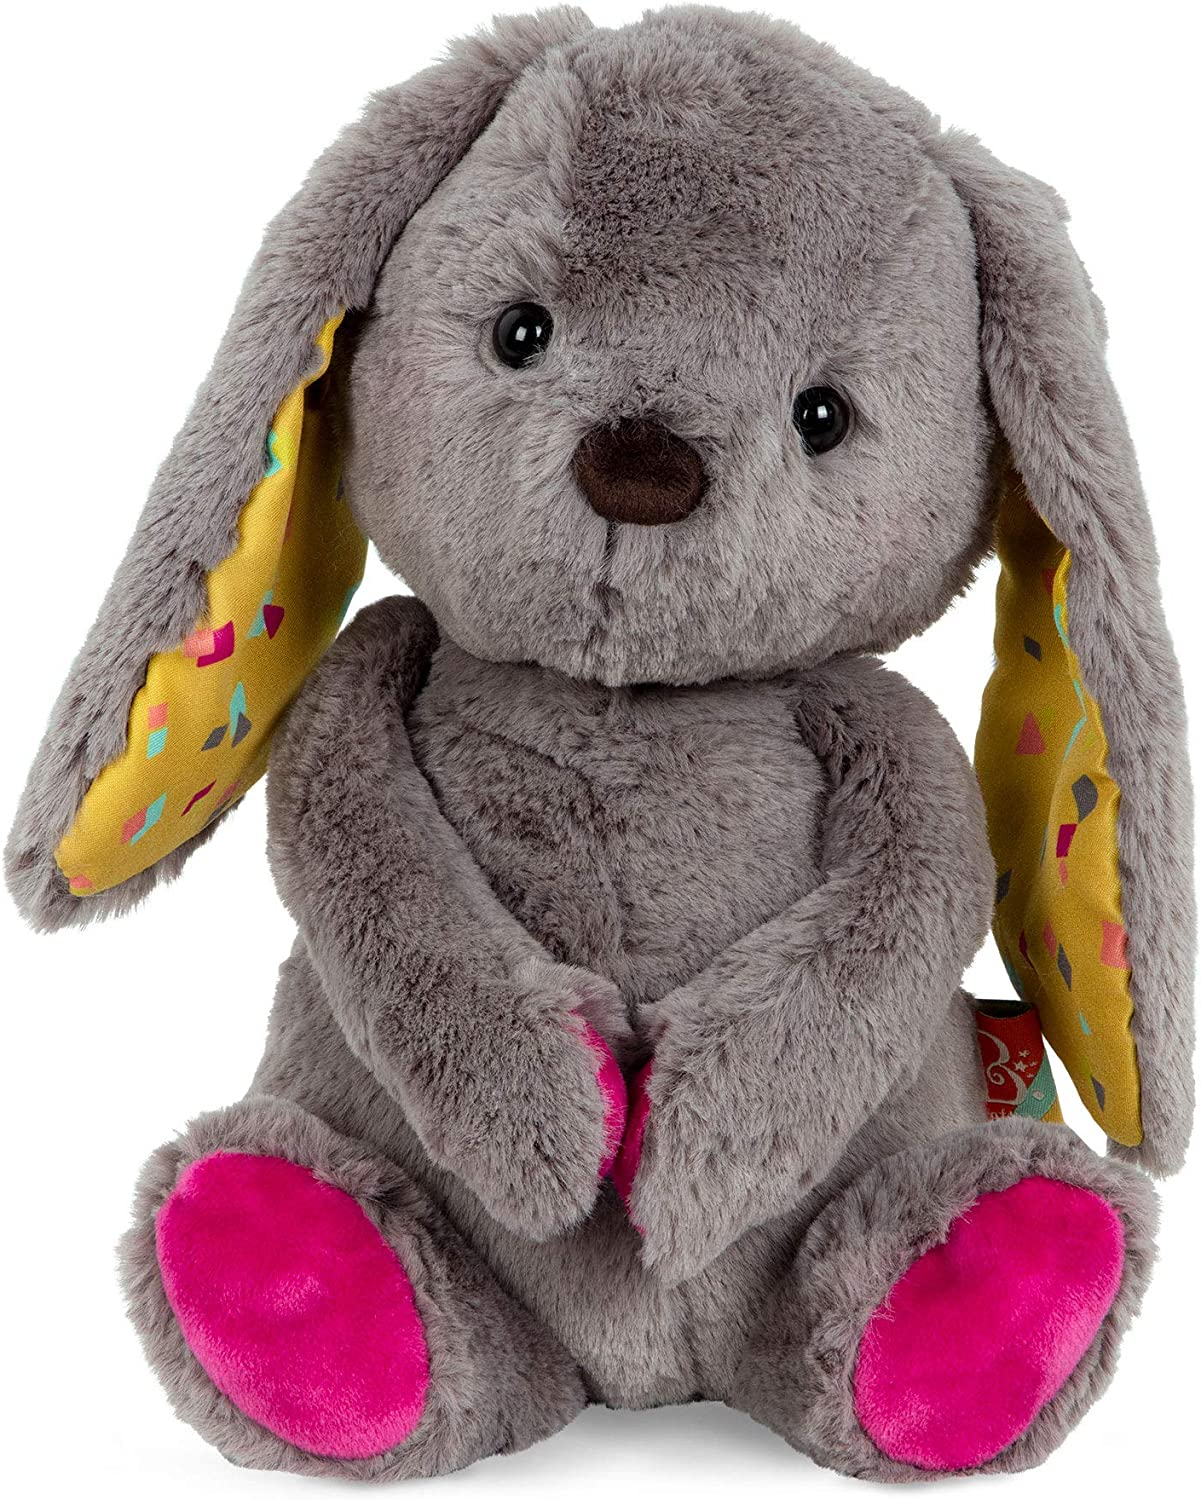 B. toys by Battat – Happy Hues – Sprinkle Bunny – Huggable Stuffed Animal Rabbit Toy – Soft & Cuddly Plush Bunny – Washable – Newborns, Toddlers, Kids, Multicolor, 12 inches, Model:BX1787C30Z